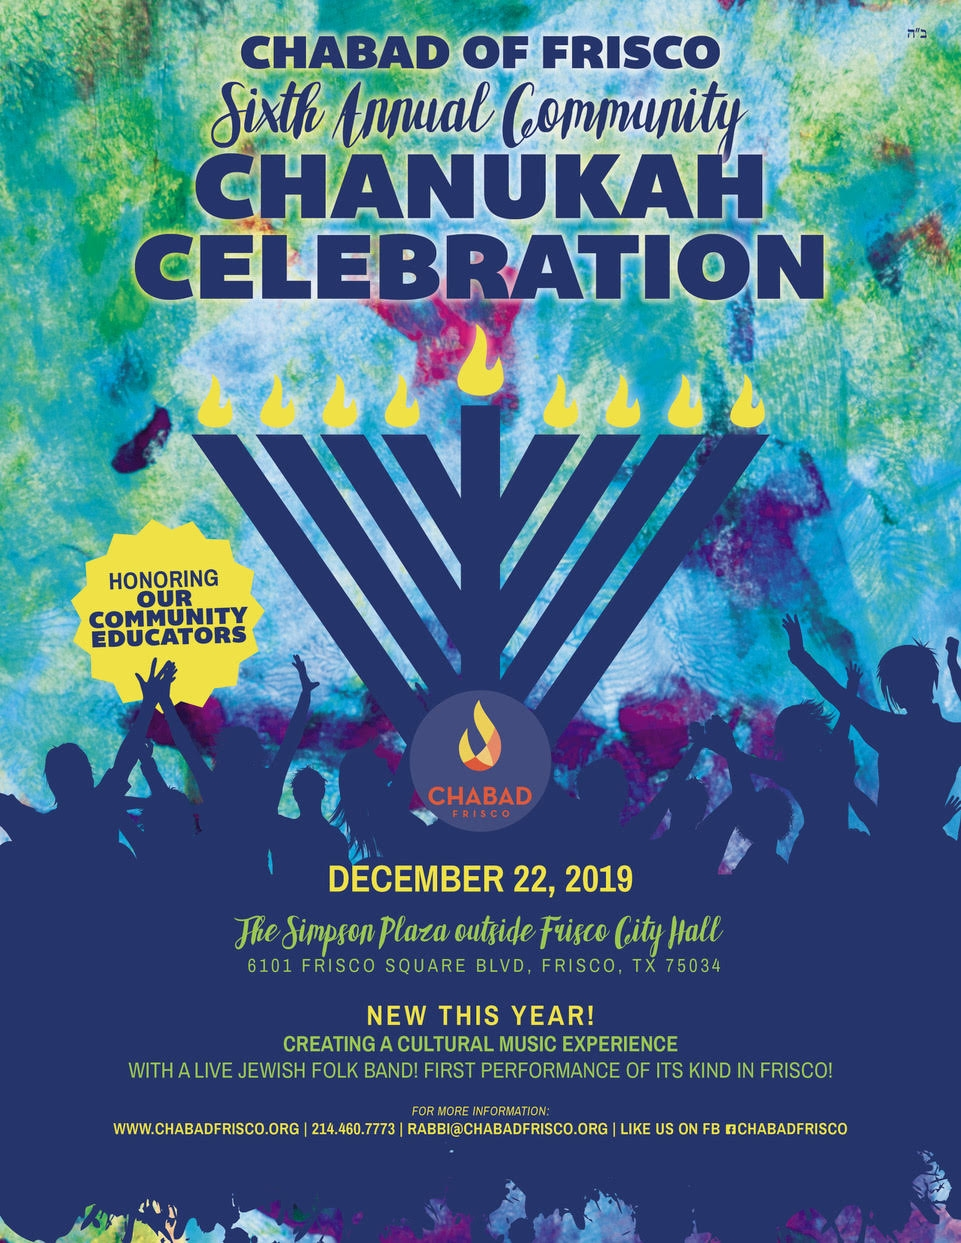 Chanukah Celebrations New.jpg